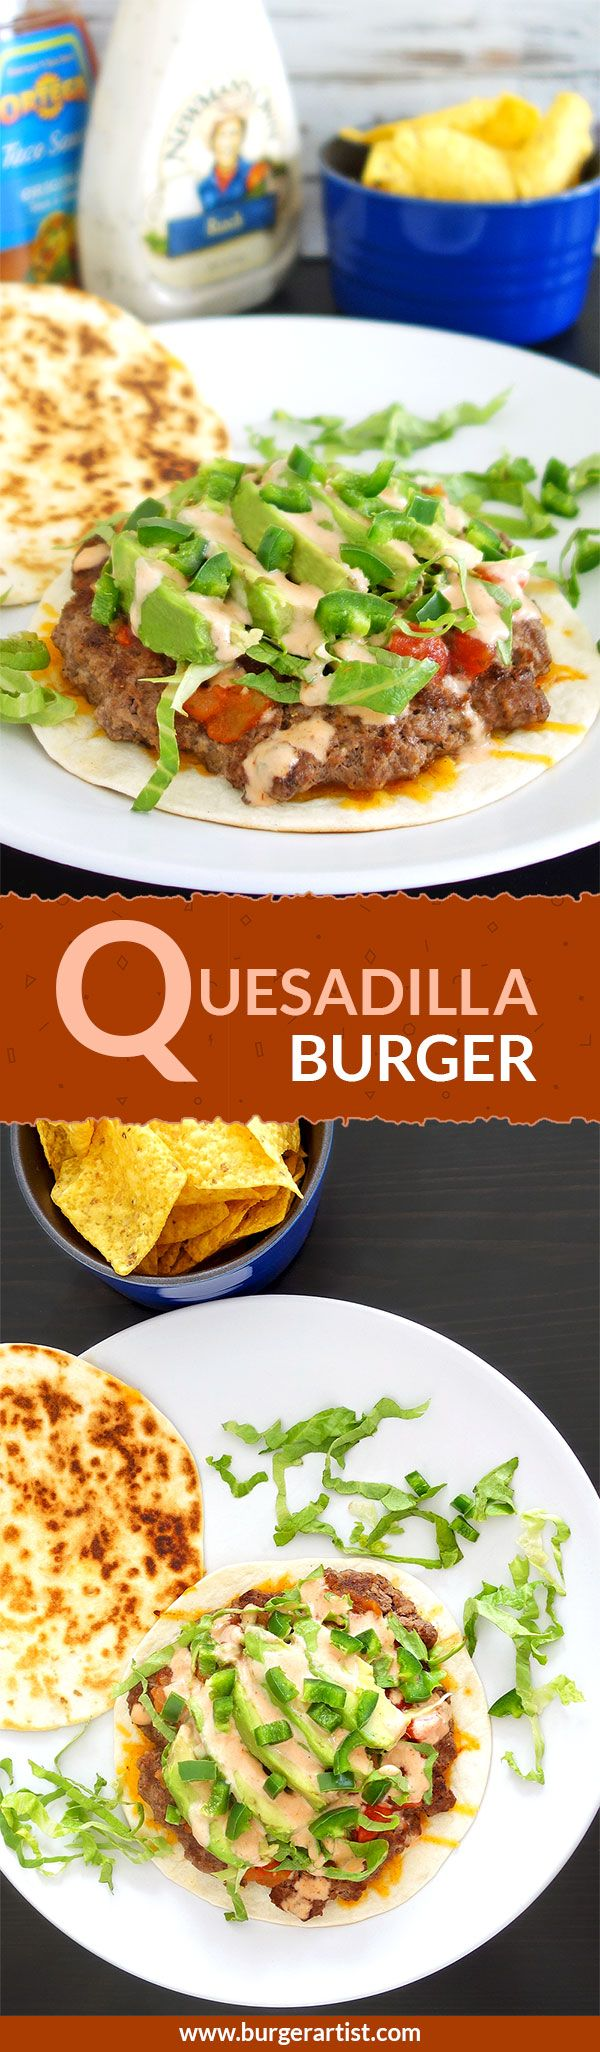 The quesadilla burger recipe - topped with avocados, jalapenos, and cheese